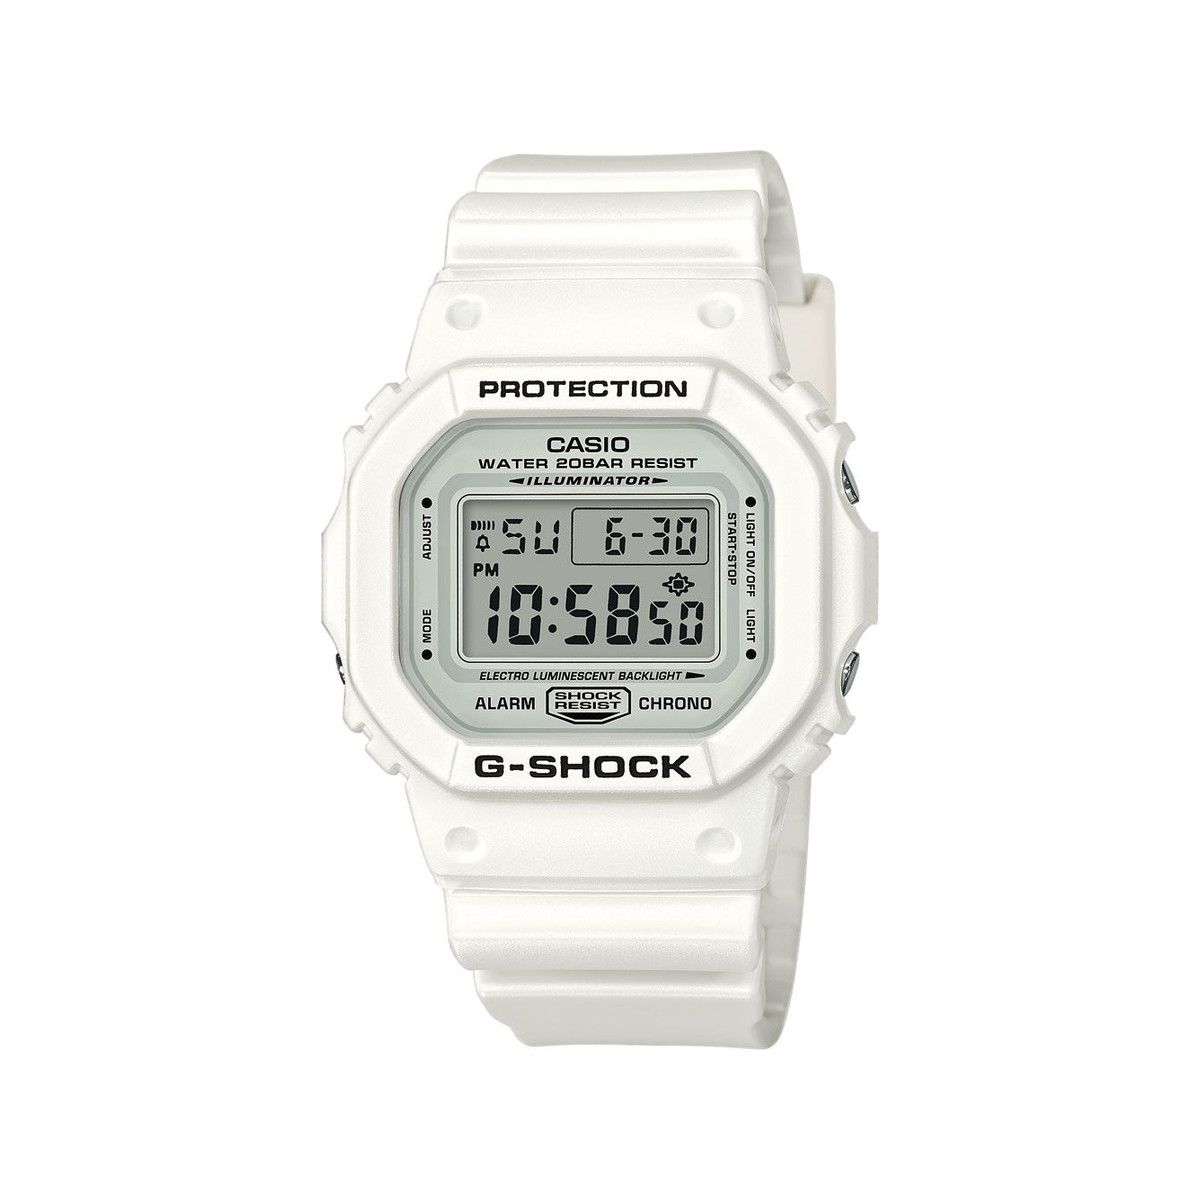 plus récent 9e6eb 82d90 Montre Casio G-Shock homme digitale résine blanc